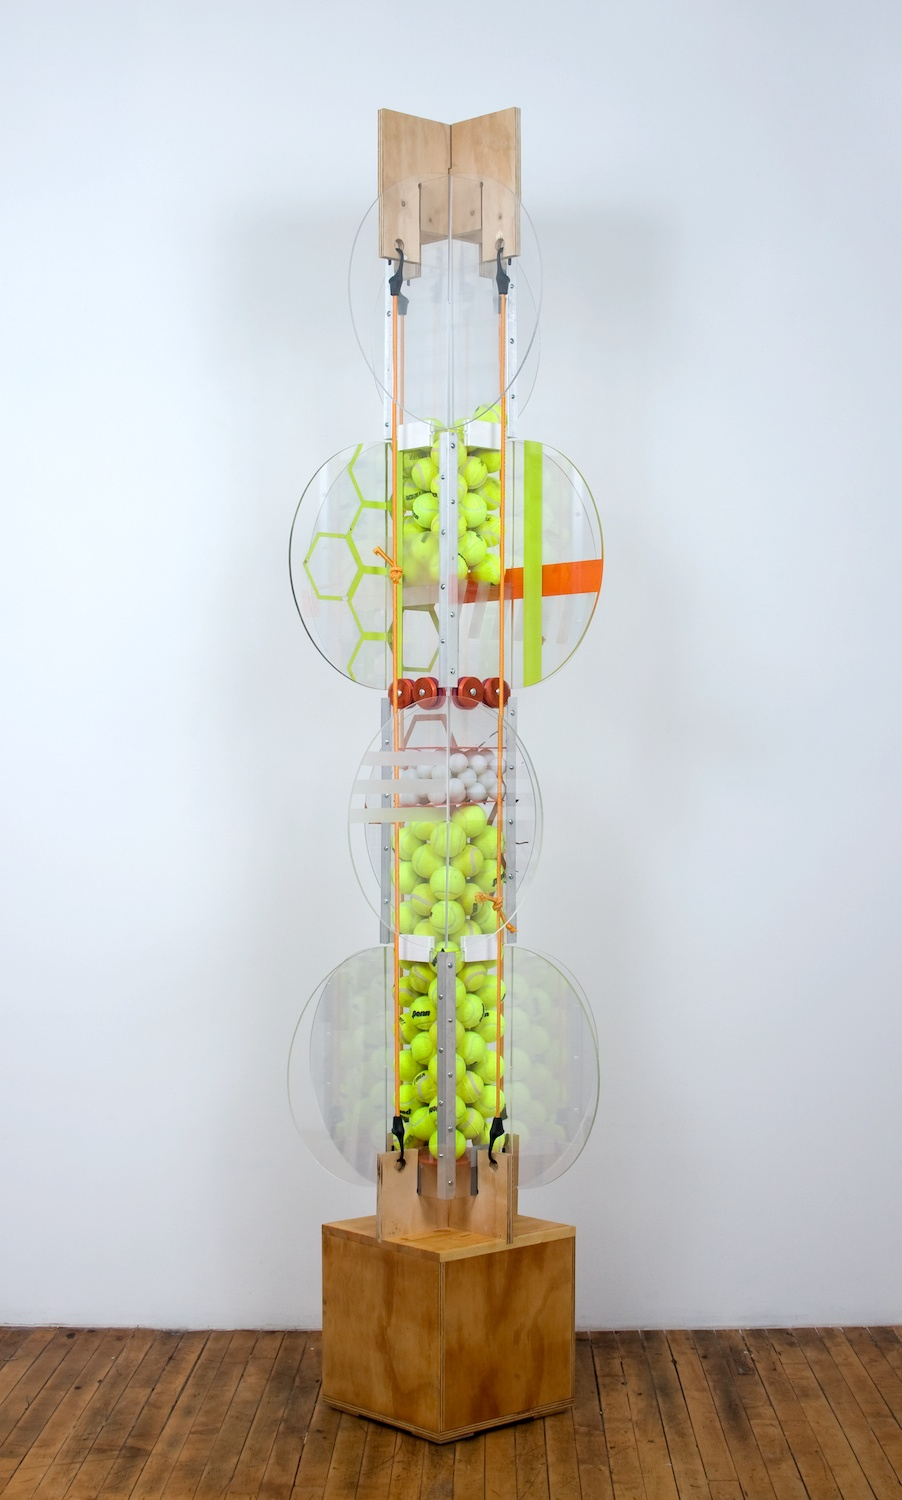 Jason Meadows  Vehicular Cellular Pattern  2008 Wood, extruded aluminum, hardware, plexiglass, spray paint, tennis balls, and mixed media 78h x 26w x 26d in JM018